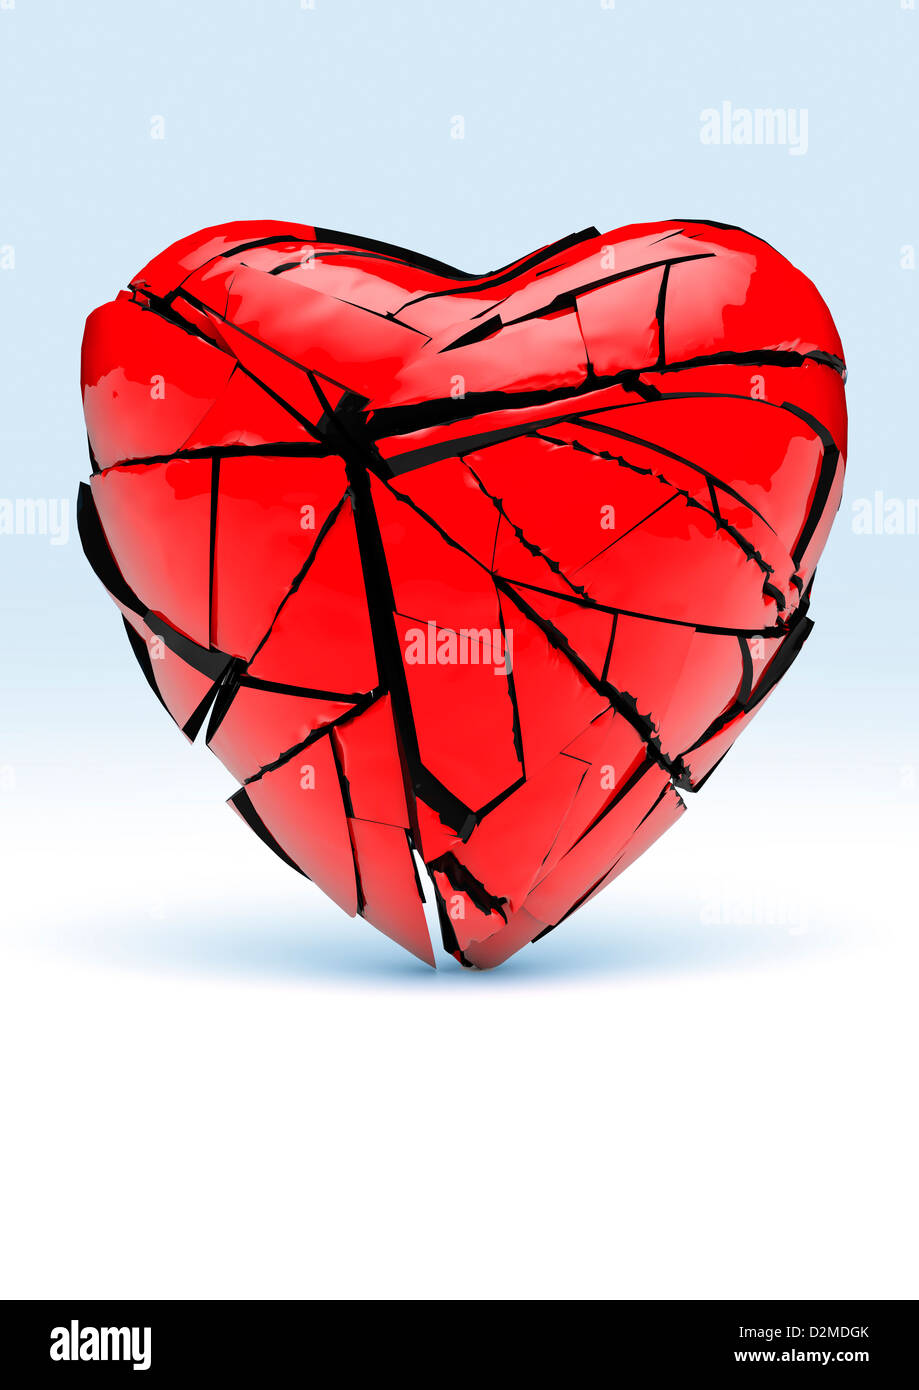 Broken heart - red love heart cracking and breaking into pieces - Stock Image